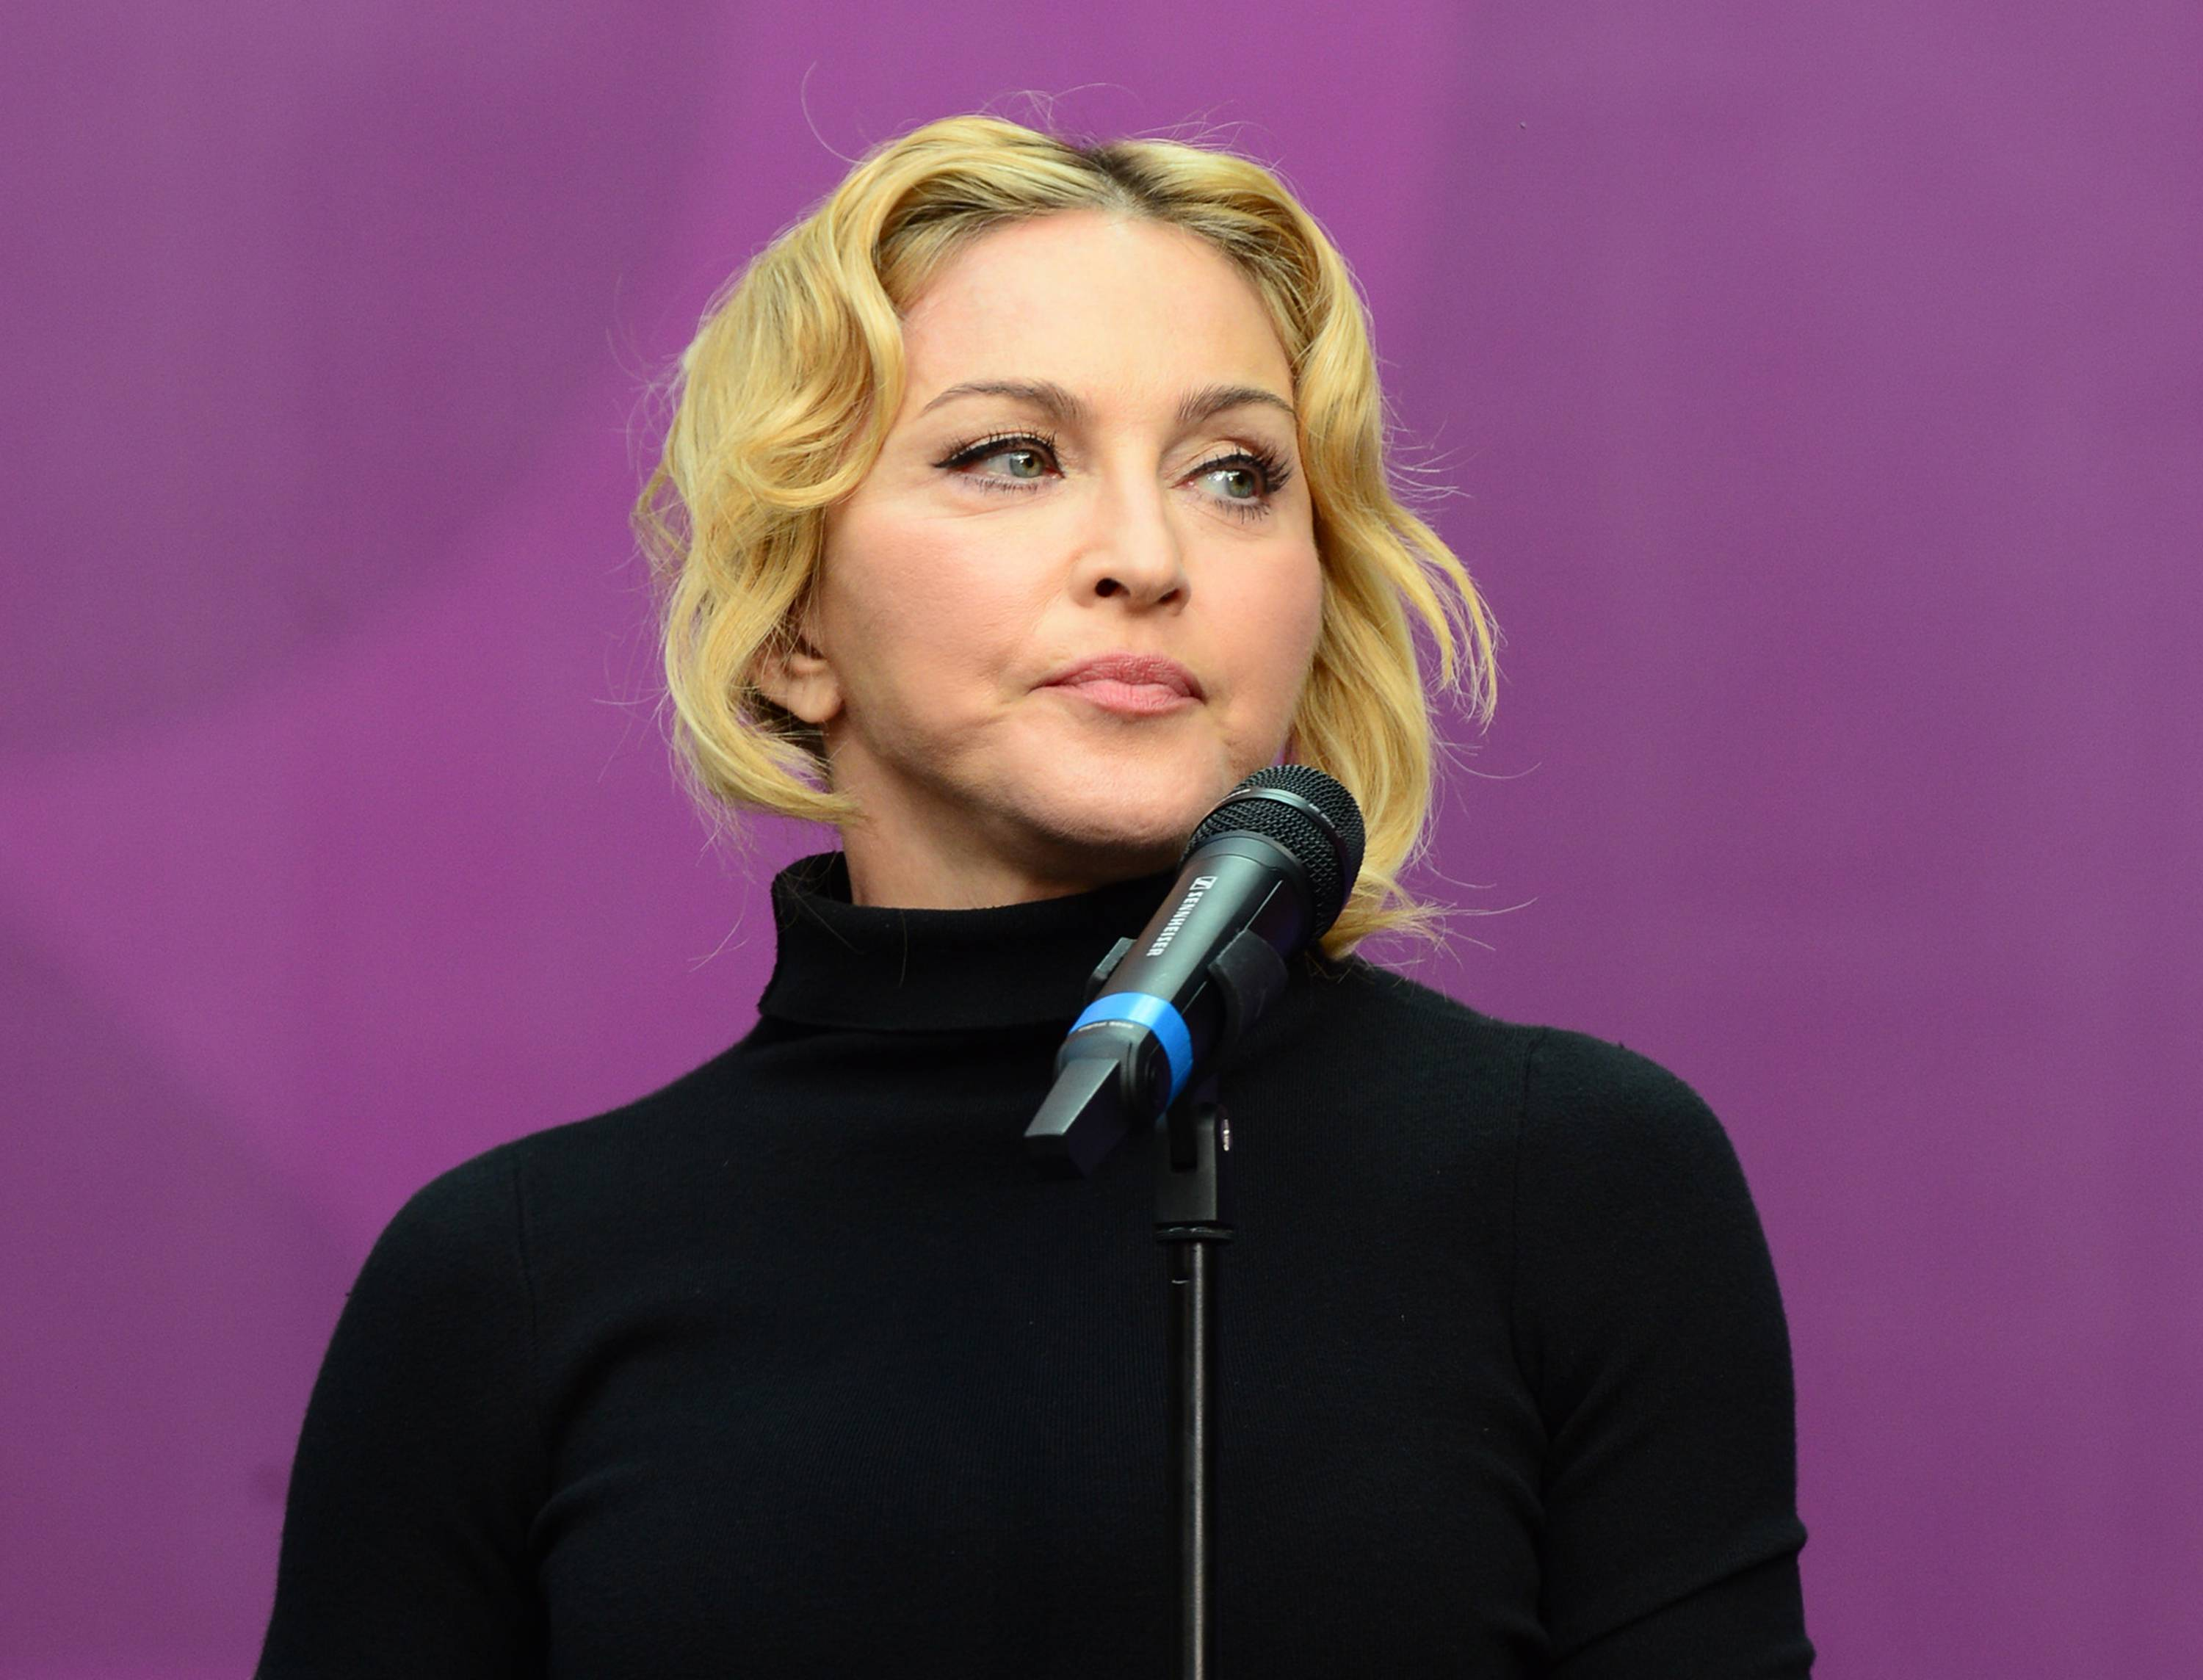 Madonna turned up for jury duty at a New York City courthouse Monday but was dismissed within two hours. Court system spokesman David Bookstaver says officials cut her loose because there were plenty of prospective jurors for the day's needs.